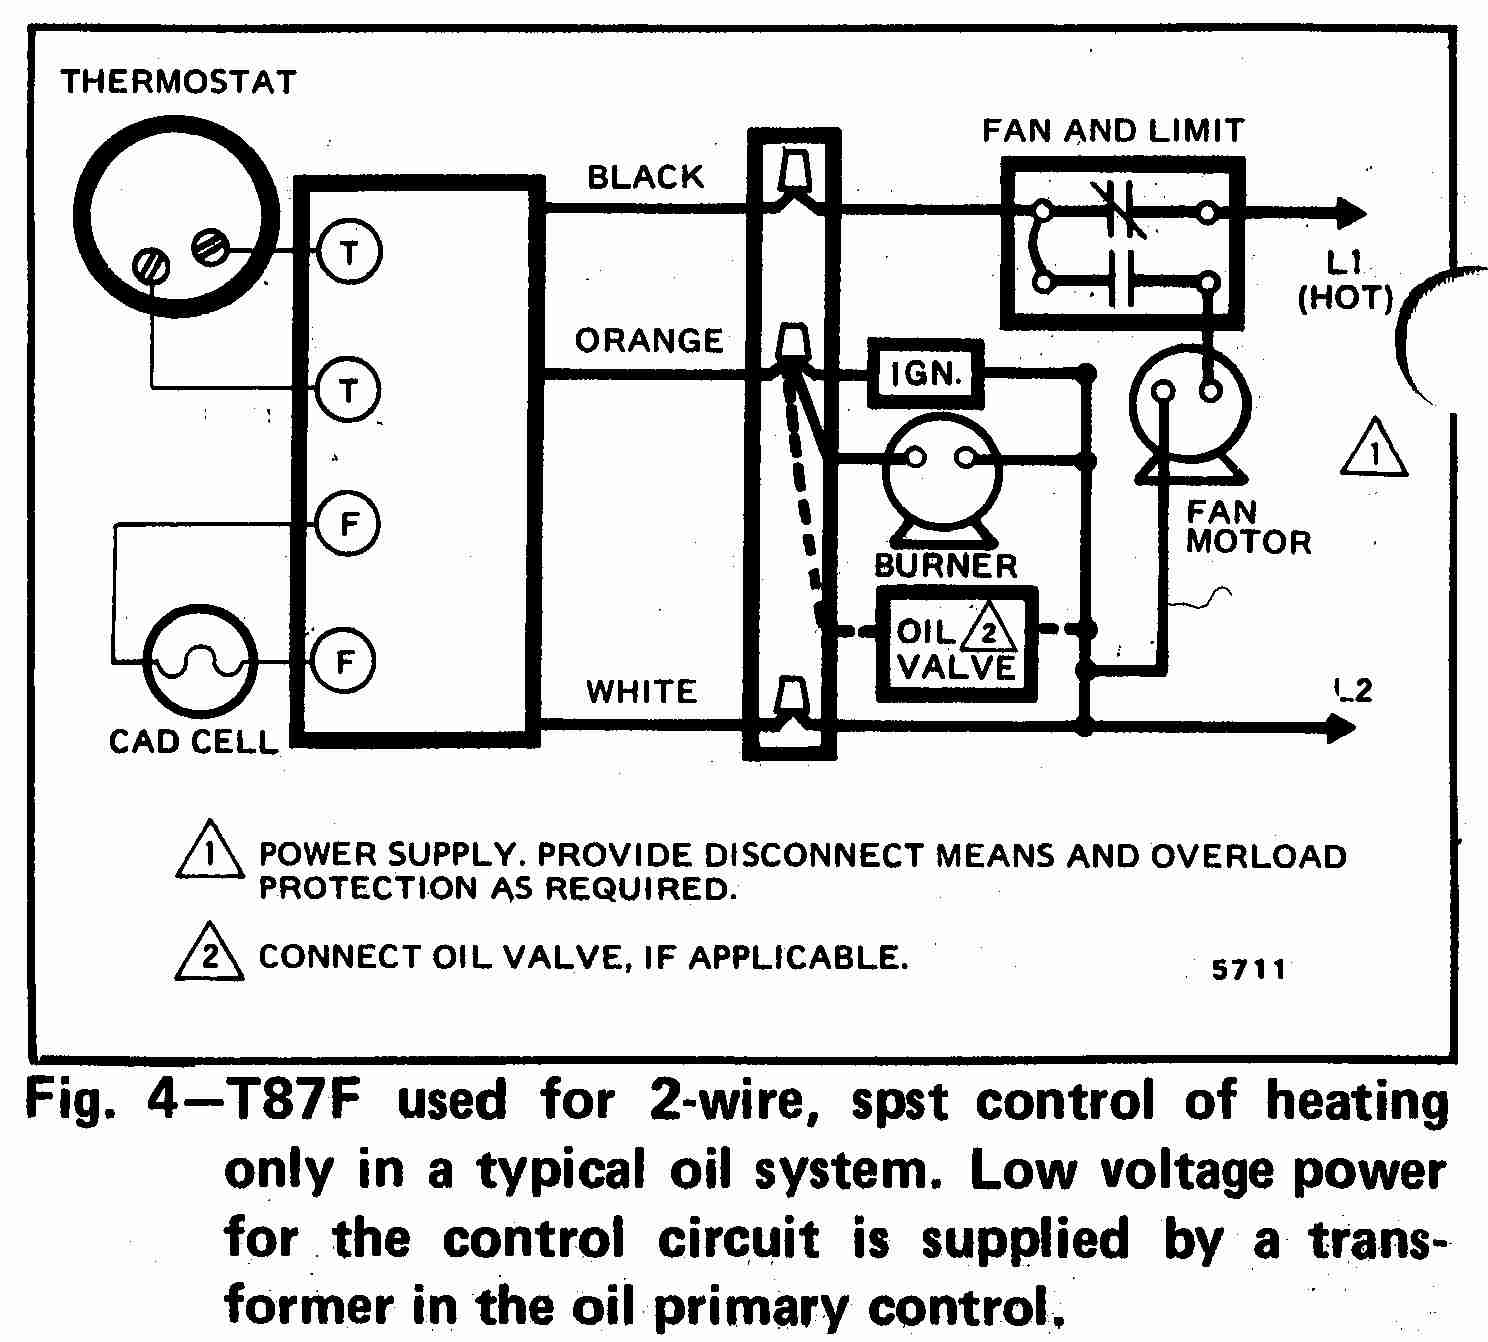 TT_T87F_0002_2W_DJF room thermostat wiring diagrams for hvac systems honeywell aquastat wiring diagram at mifinder.co